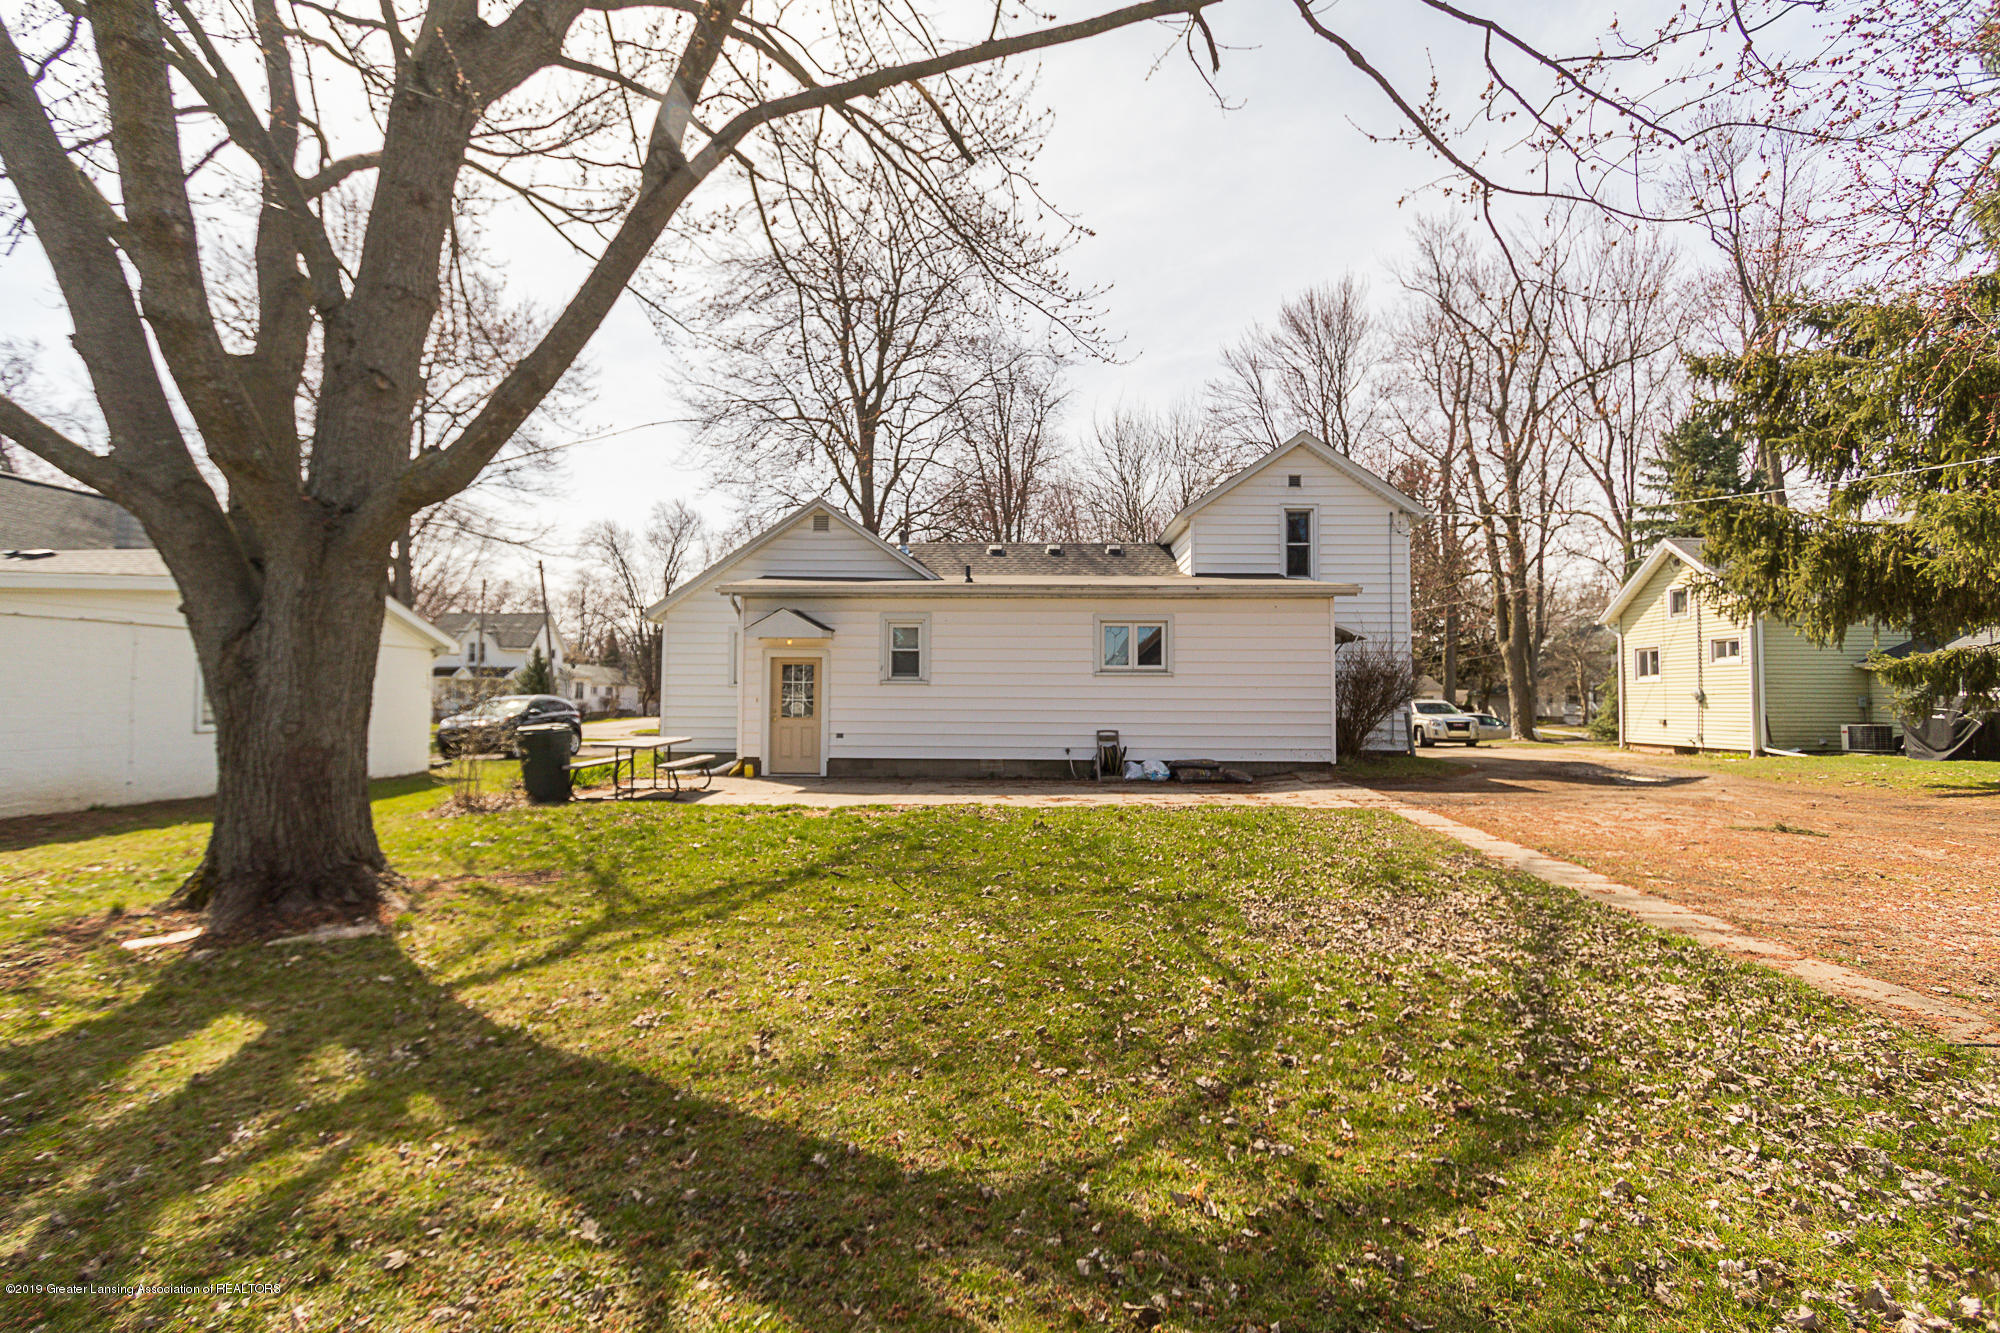 112 W Floral Ave - 18 - 18